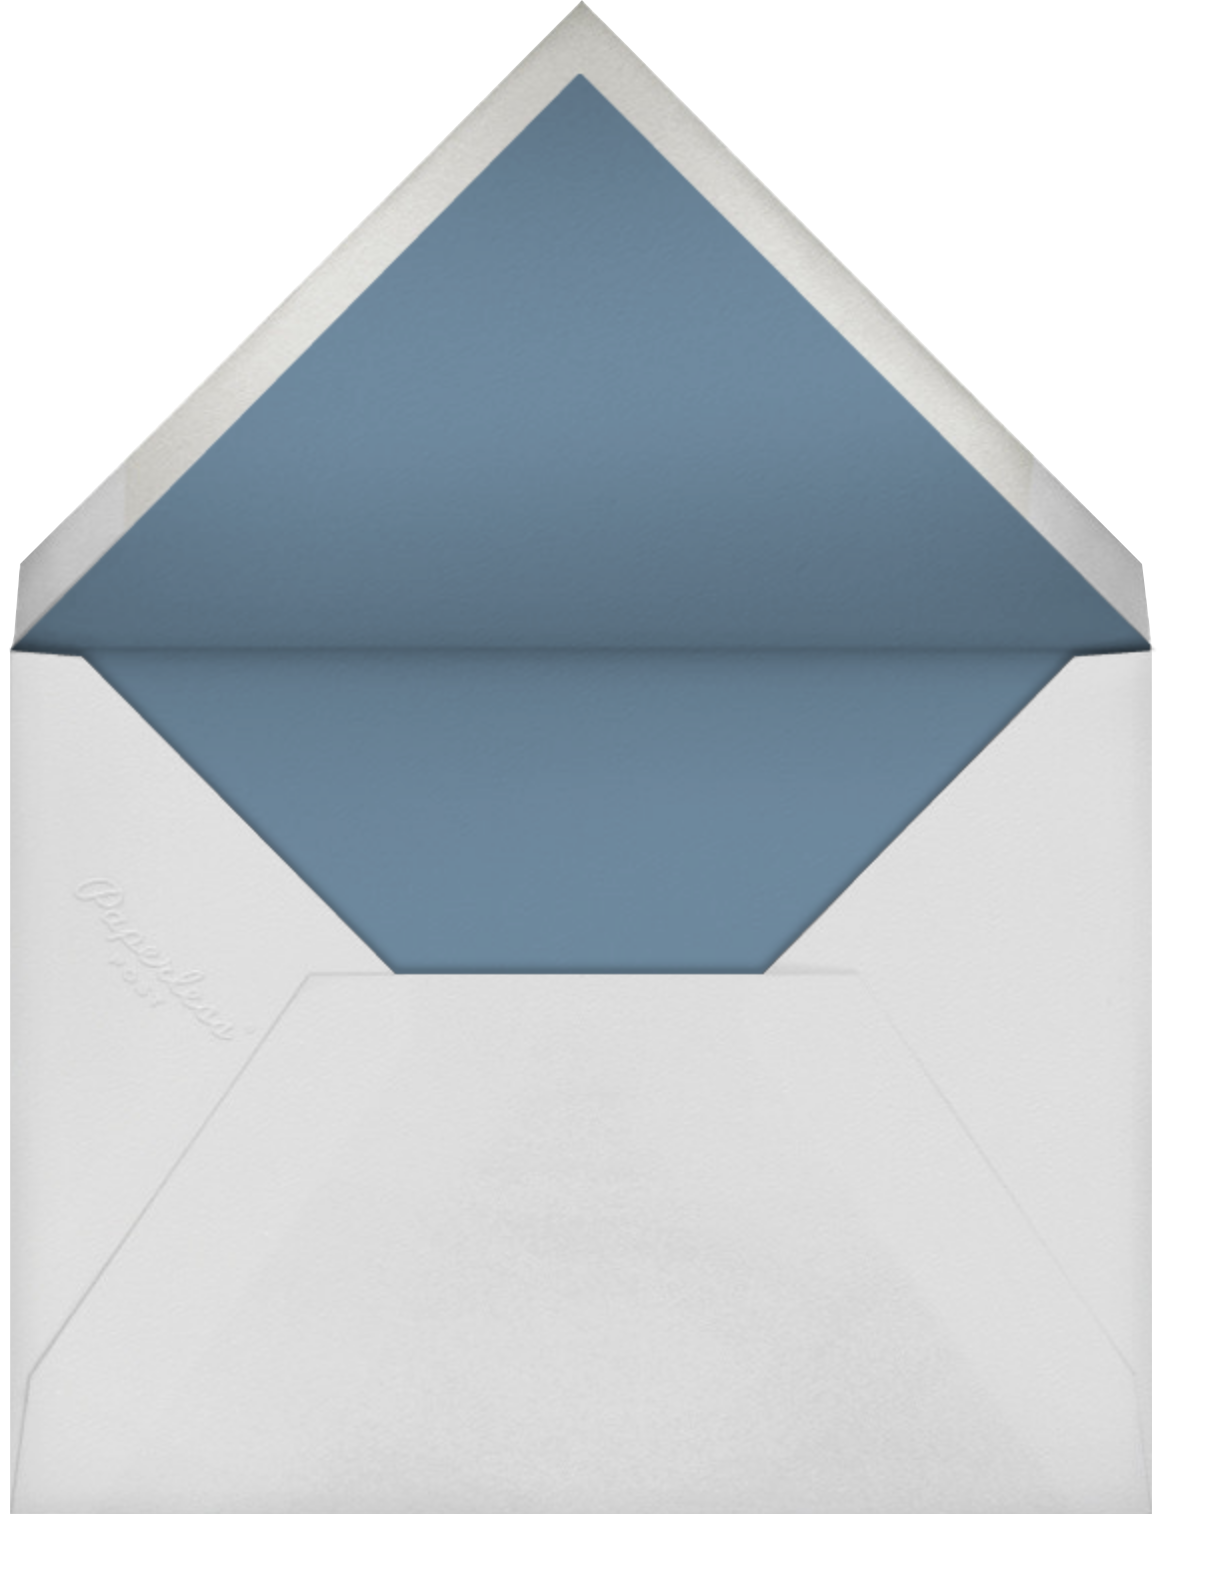 Andros (Save The Date) - French Blue - Crane & Co. - null - envelope back